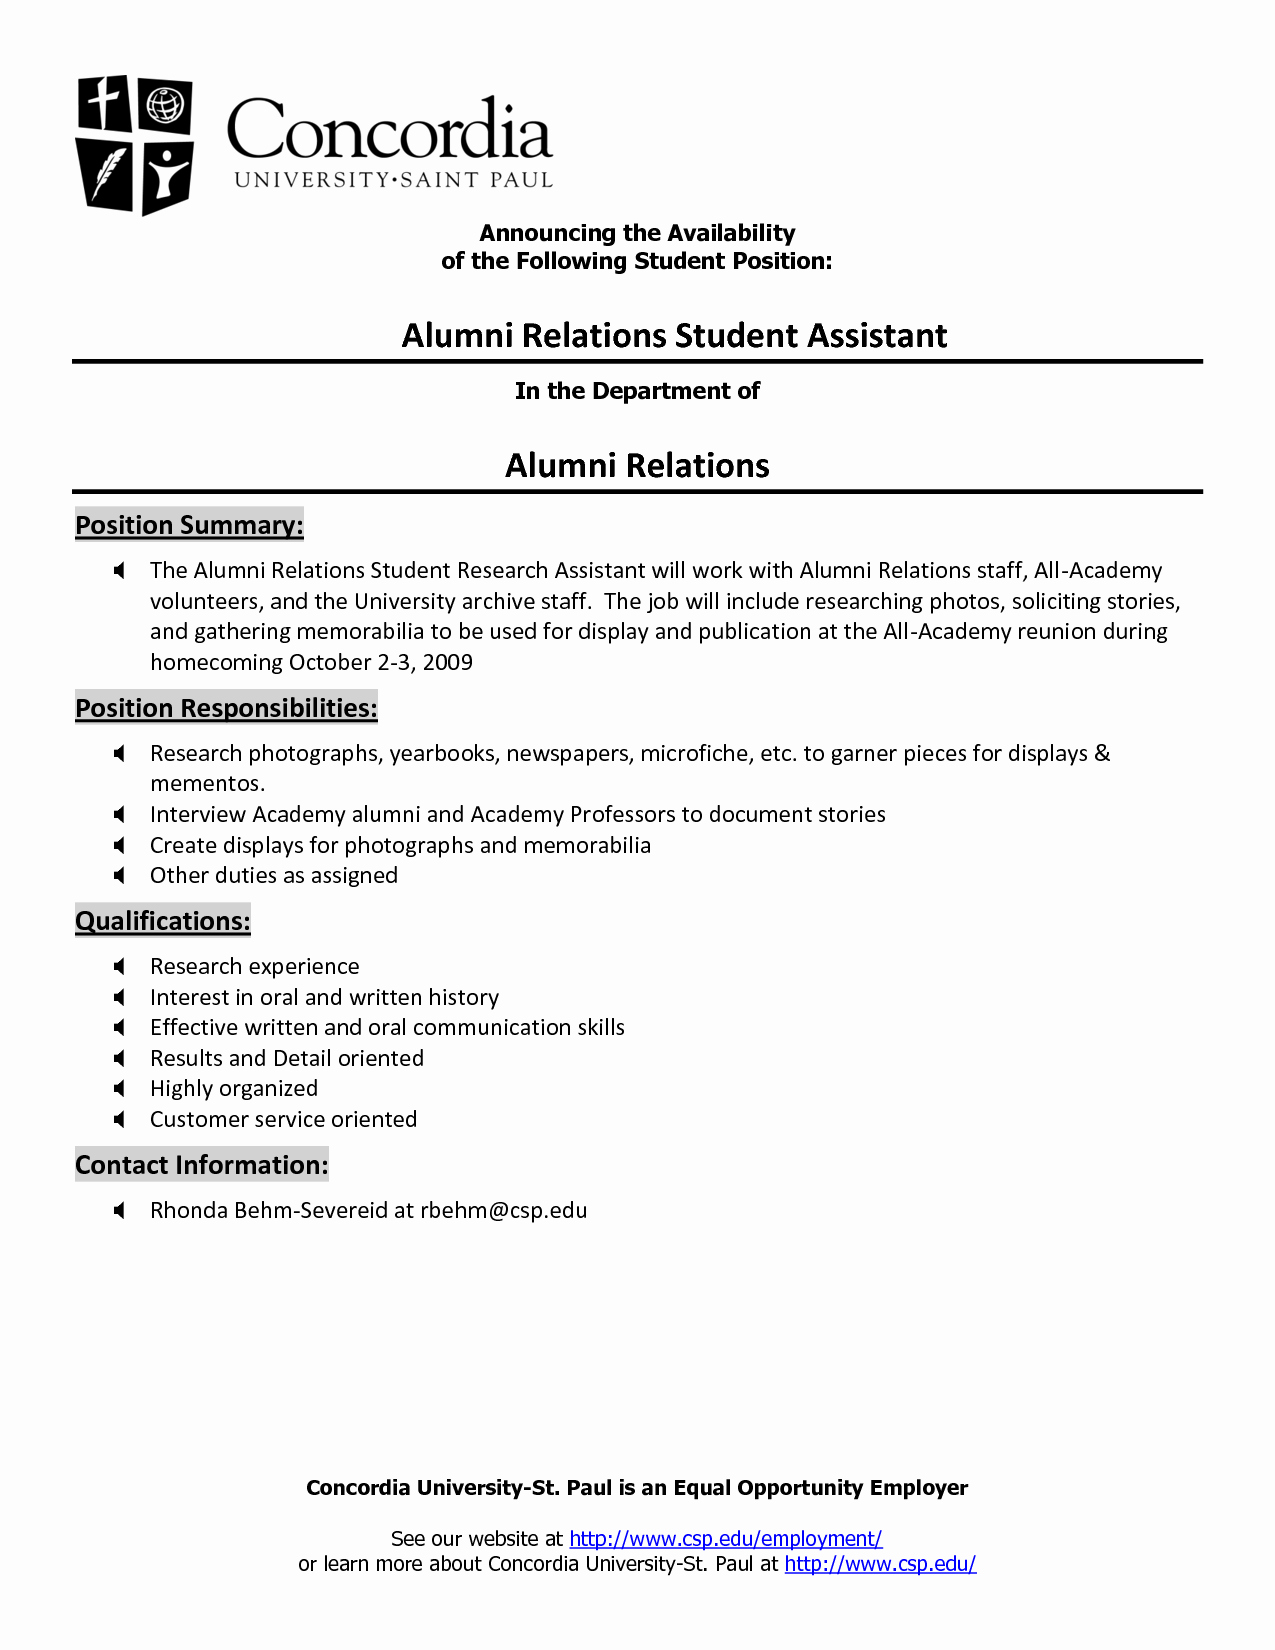 Internal Job Posting Template